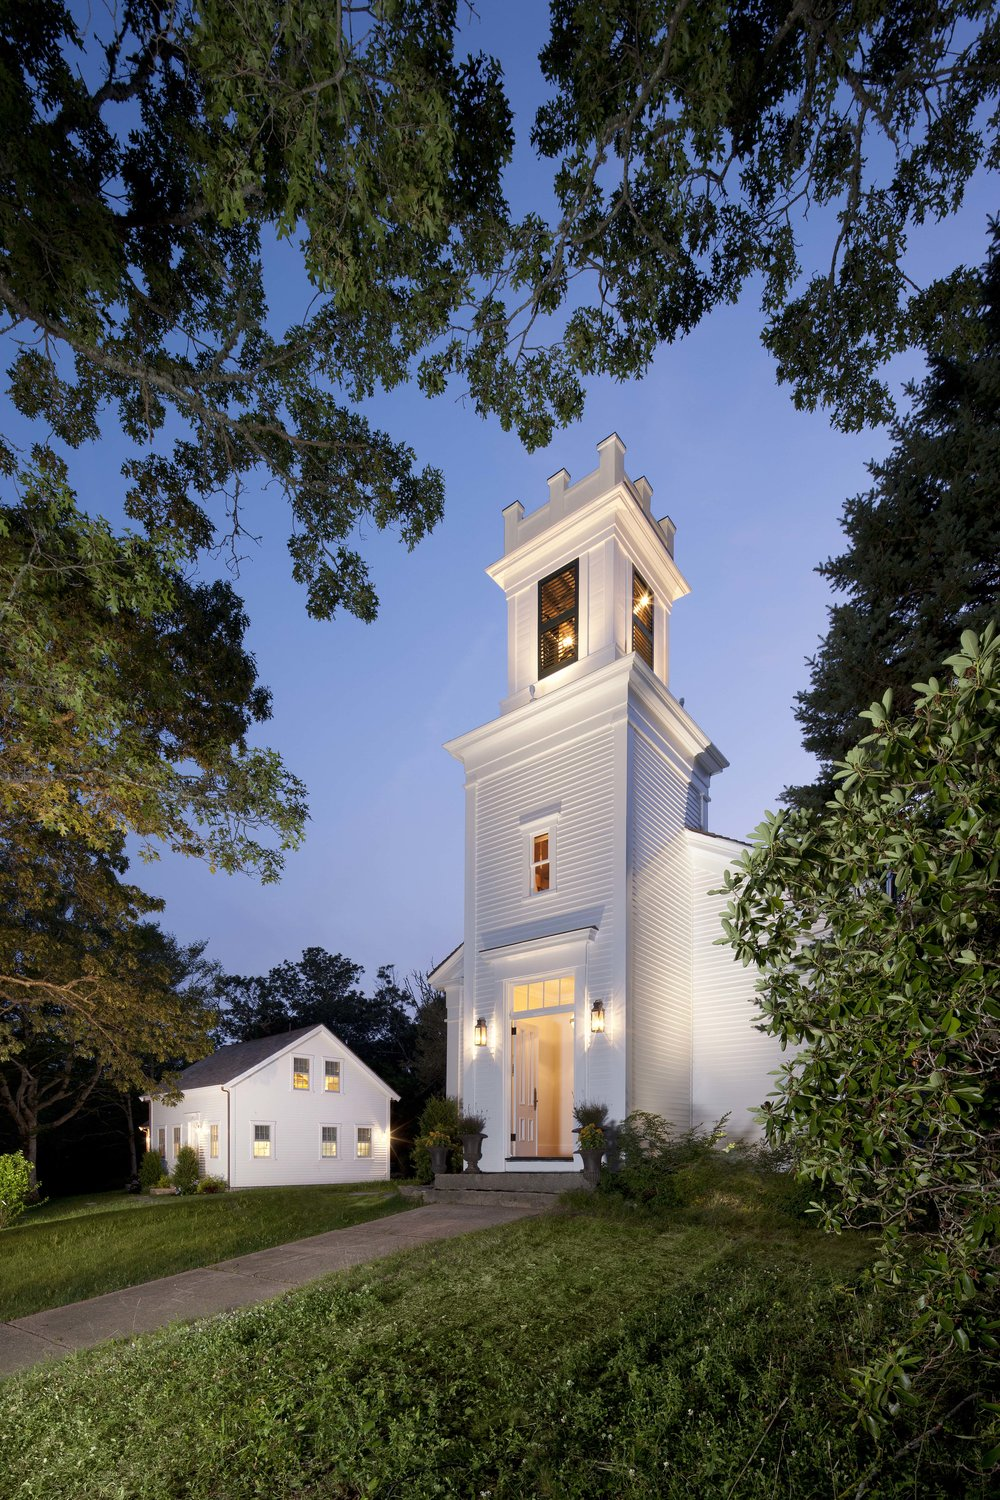 Historic 1840's Church restoration, residential conversion.